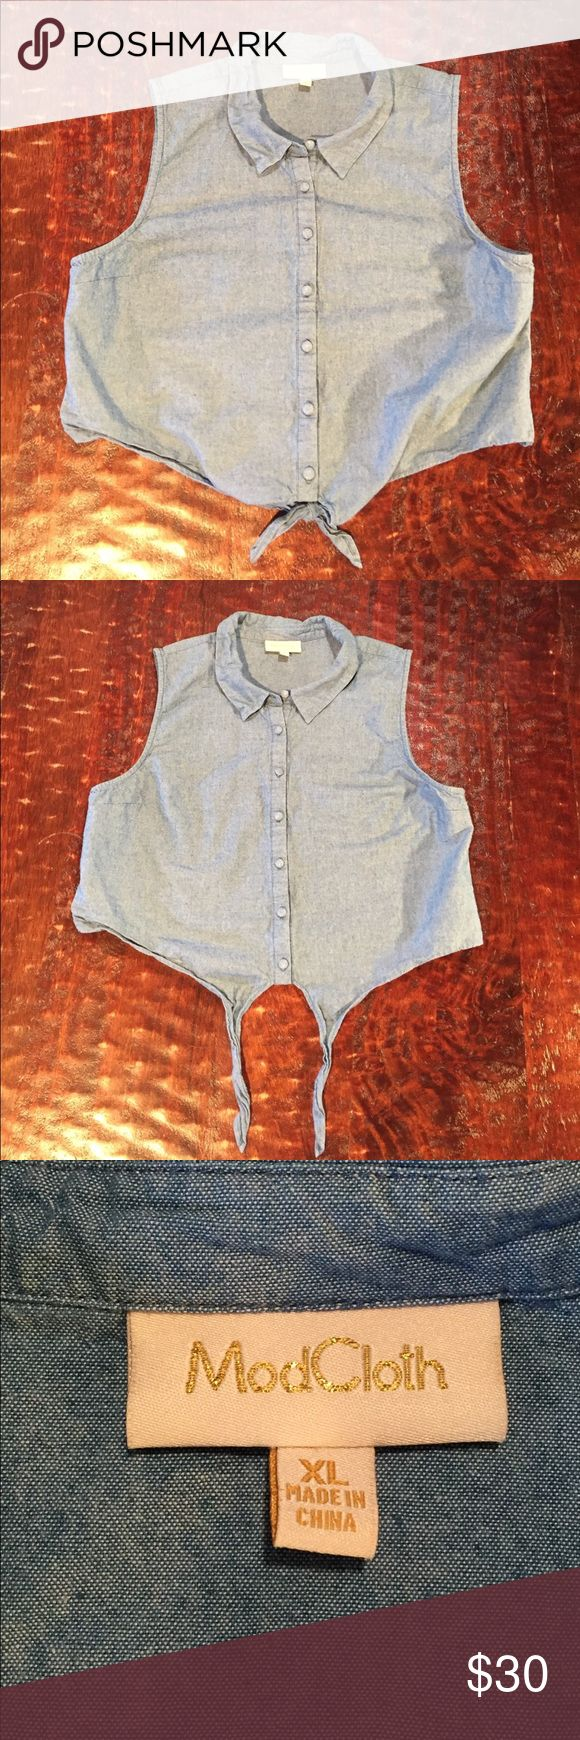 """ModCloth Denim Button Down Crop Top XL ModCloth Denim Button Down Crop Top. Top is 18"""" from shoulder to hem. Bust measures 19 1/2"""" laying flat. Crop Top is lightweight, features a tie on the bottom and is in excellent condition with no signs of wear. Comes from a Smoke Free/Pet Friendly Home. Offers always welcome. ModCloth Tops Crop Tops"""